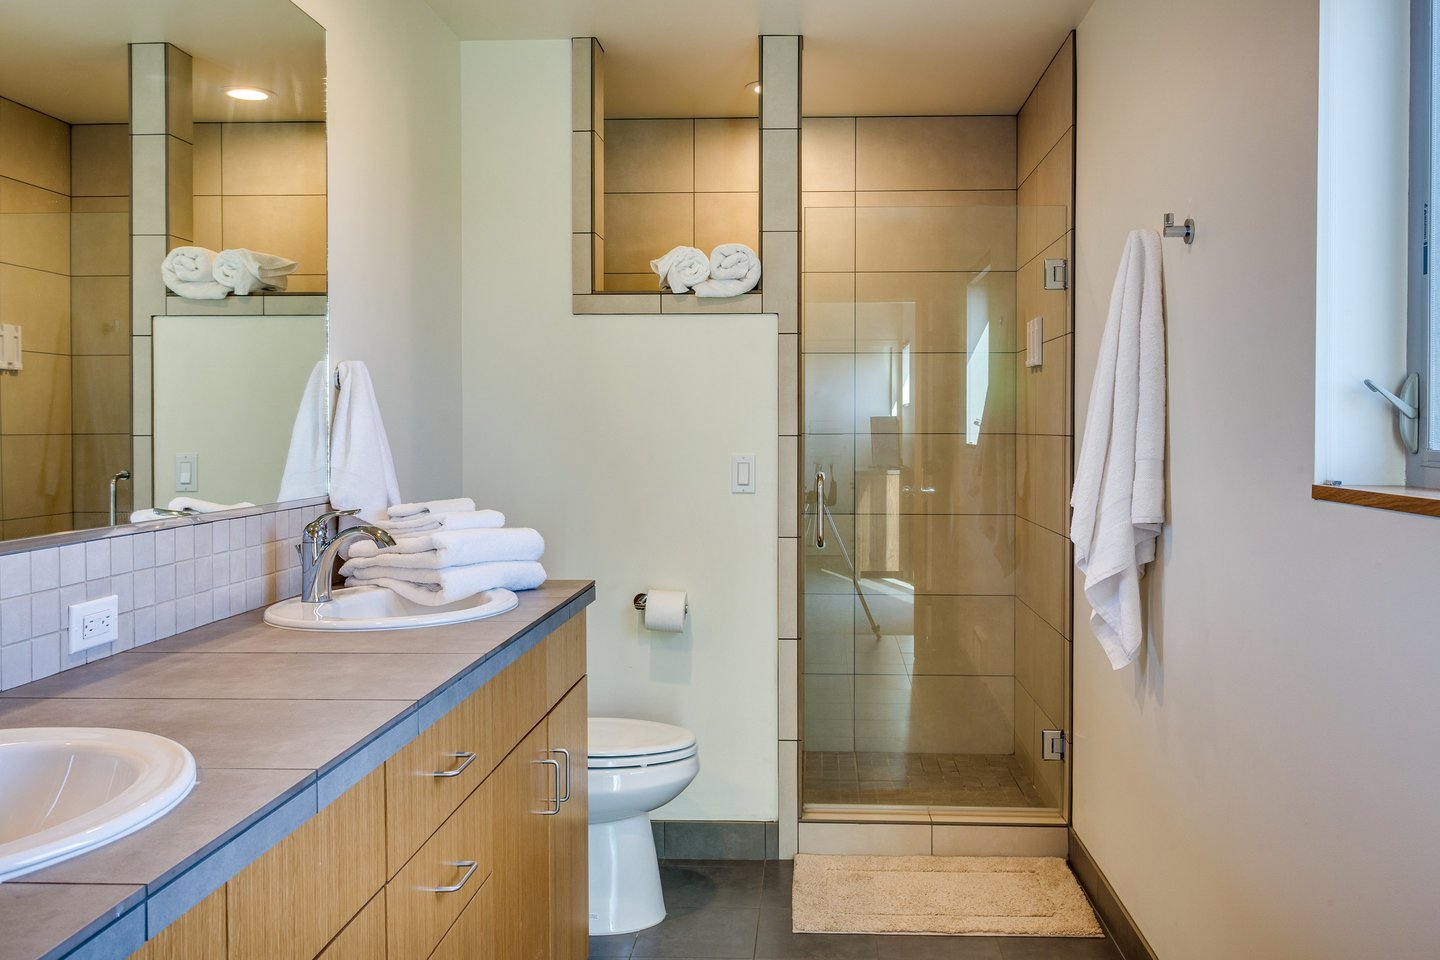 Attached to the downstairs queen bedroom is a beautiful bathroom with a tiled walk in shower.